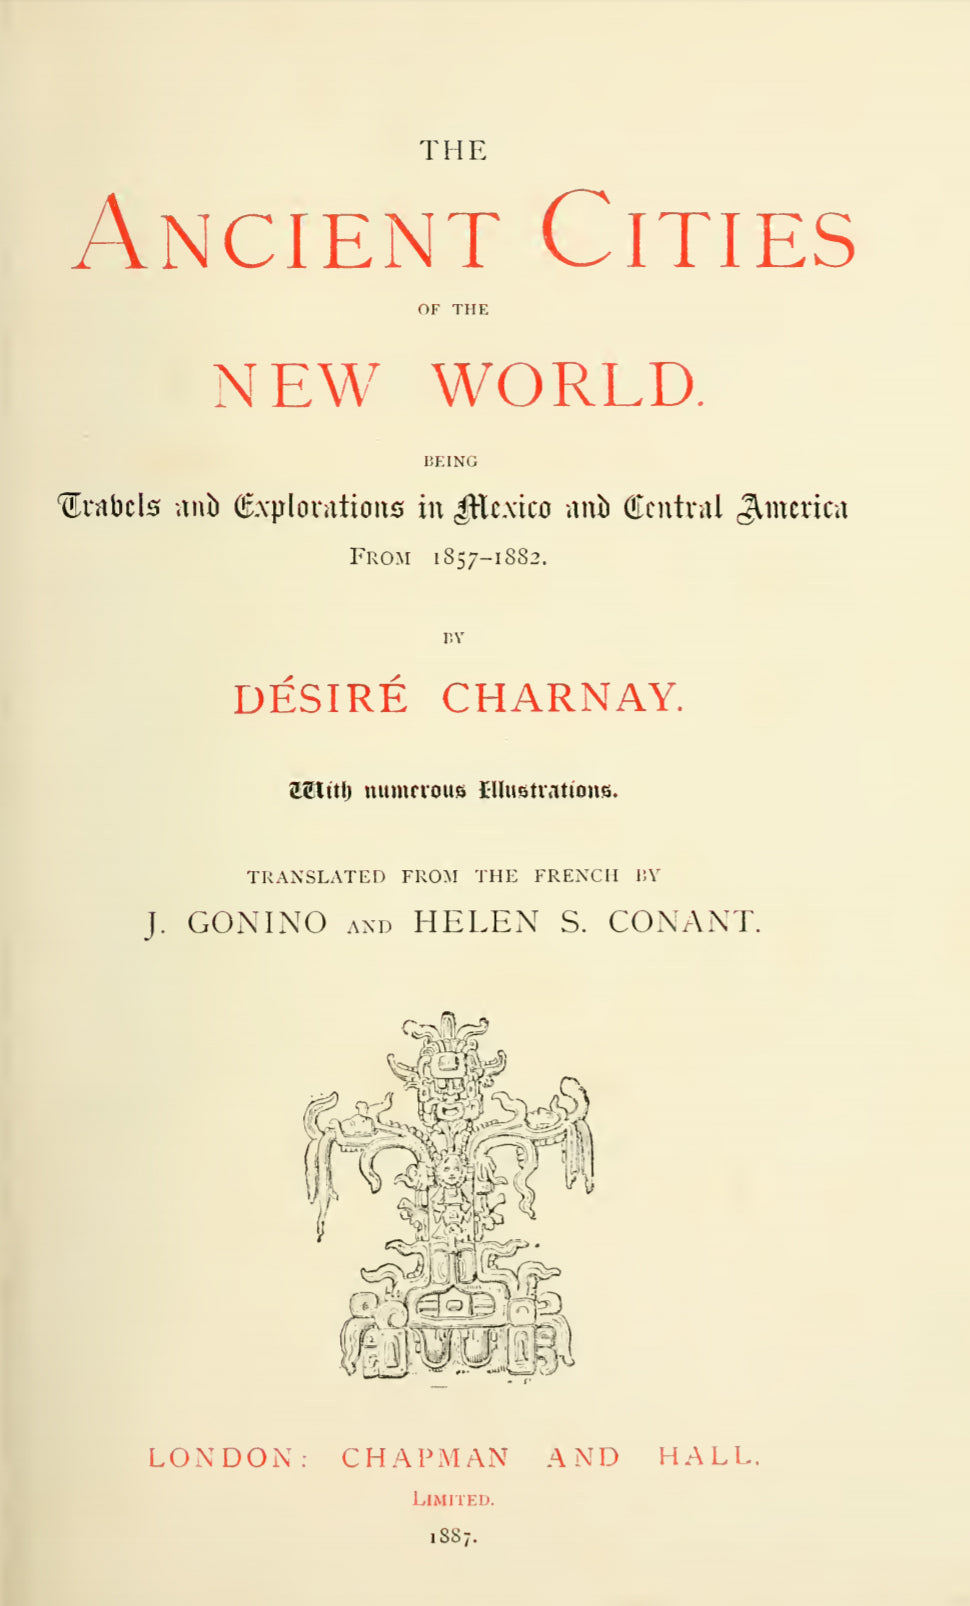 1887 The Ancient Cities of the New World being travels & explorations in Mexico & Central America